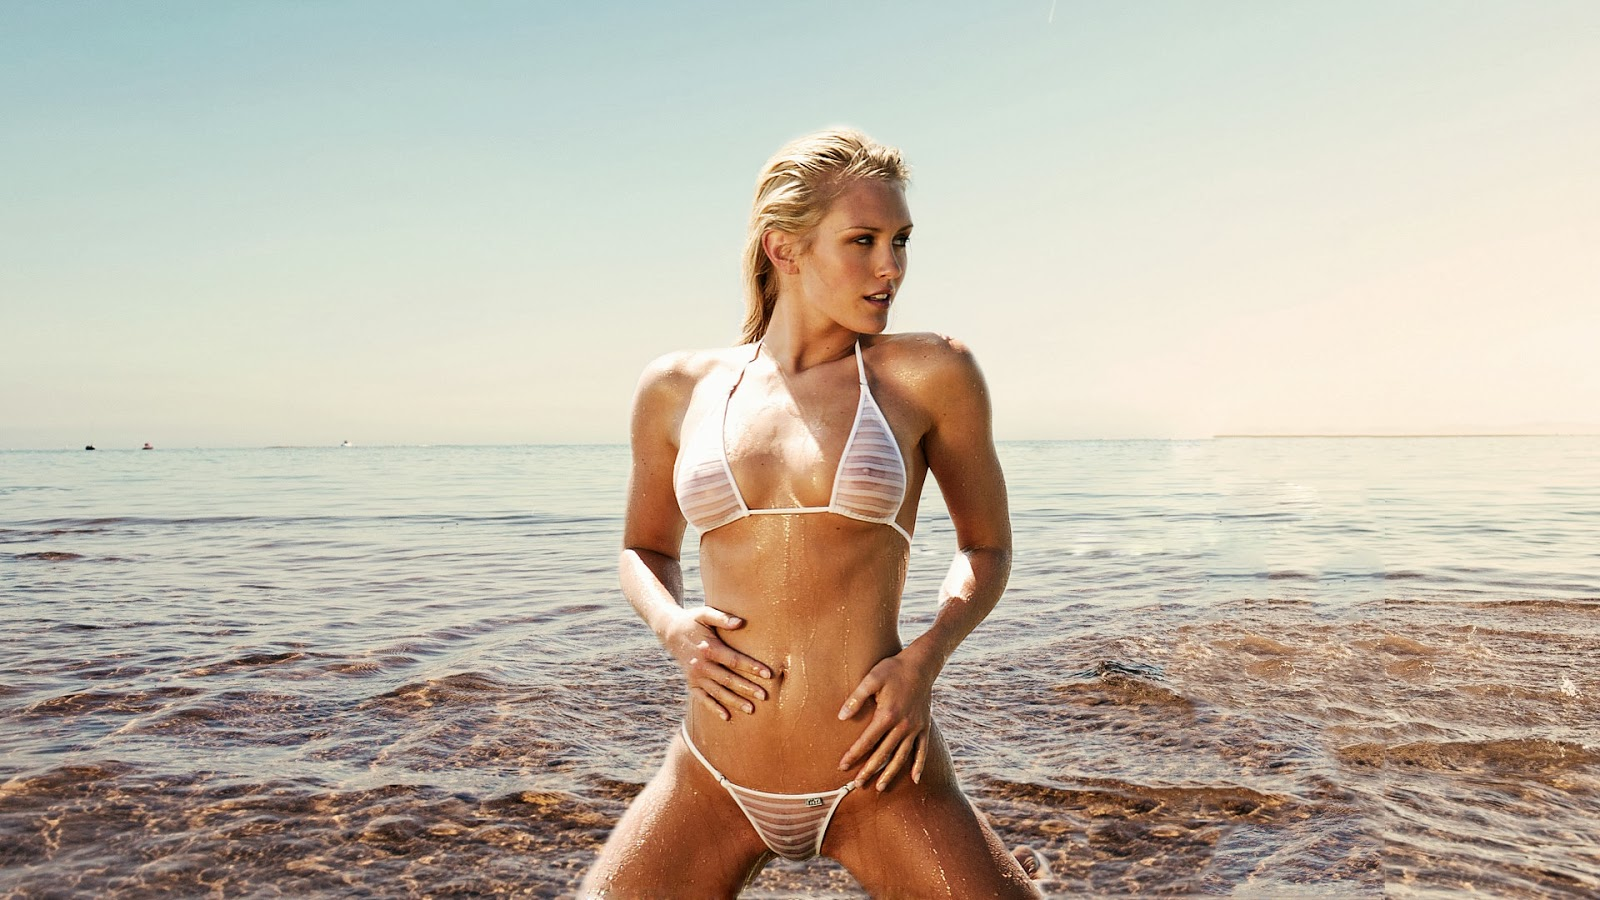 Nicky Whelan Nicky Whelan new images